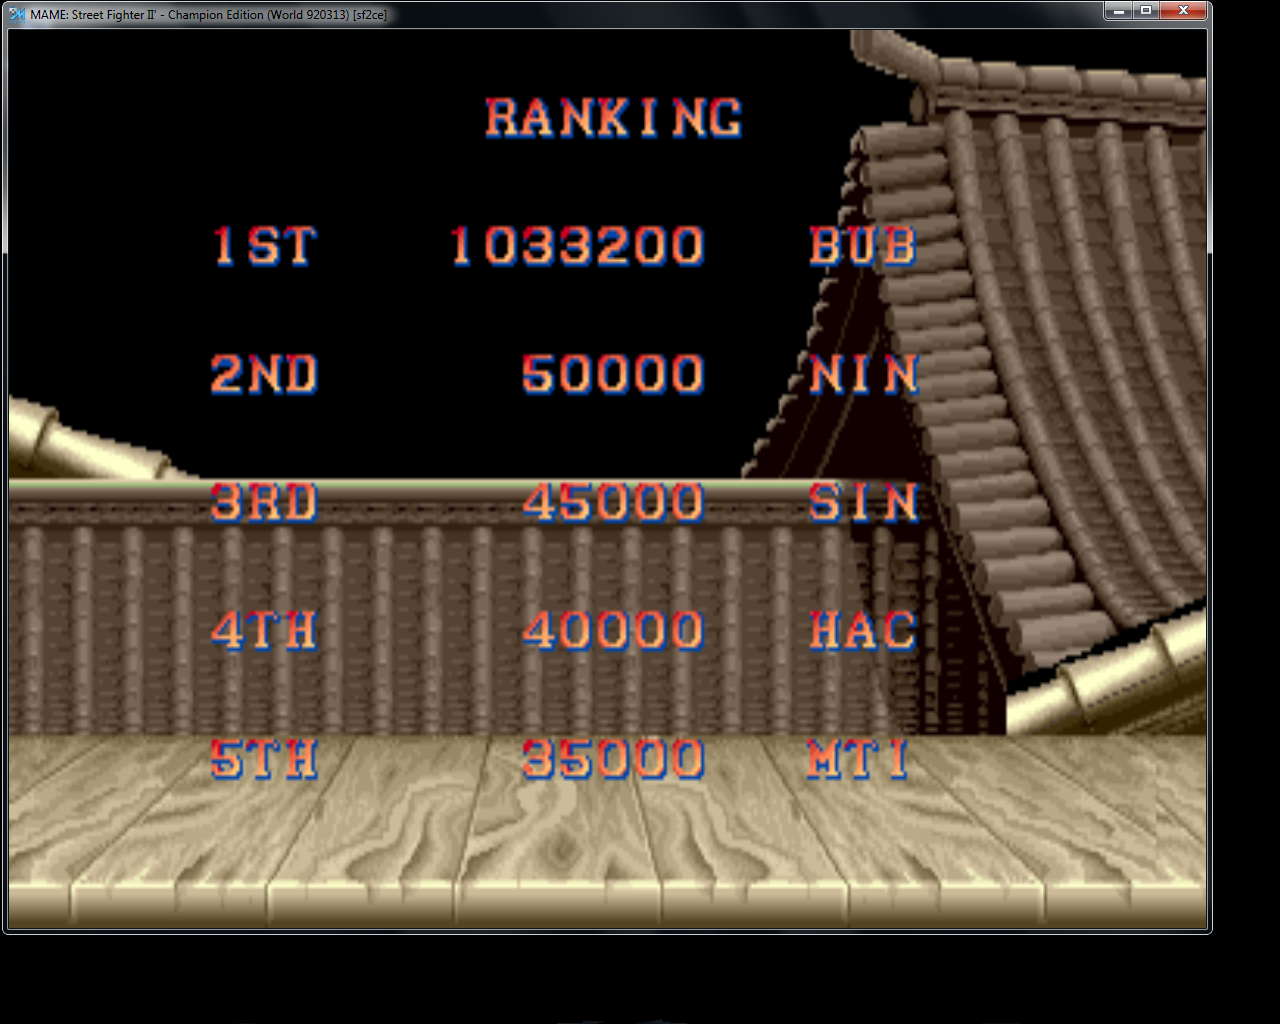 bubufubu: Street Fighter II: Champion Edition [sf2ce] (Arcade Emulated / M.A.M.E.) 1,033,200 points on 2015-04-11 14:32:20